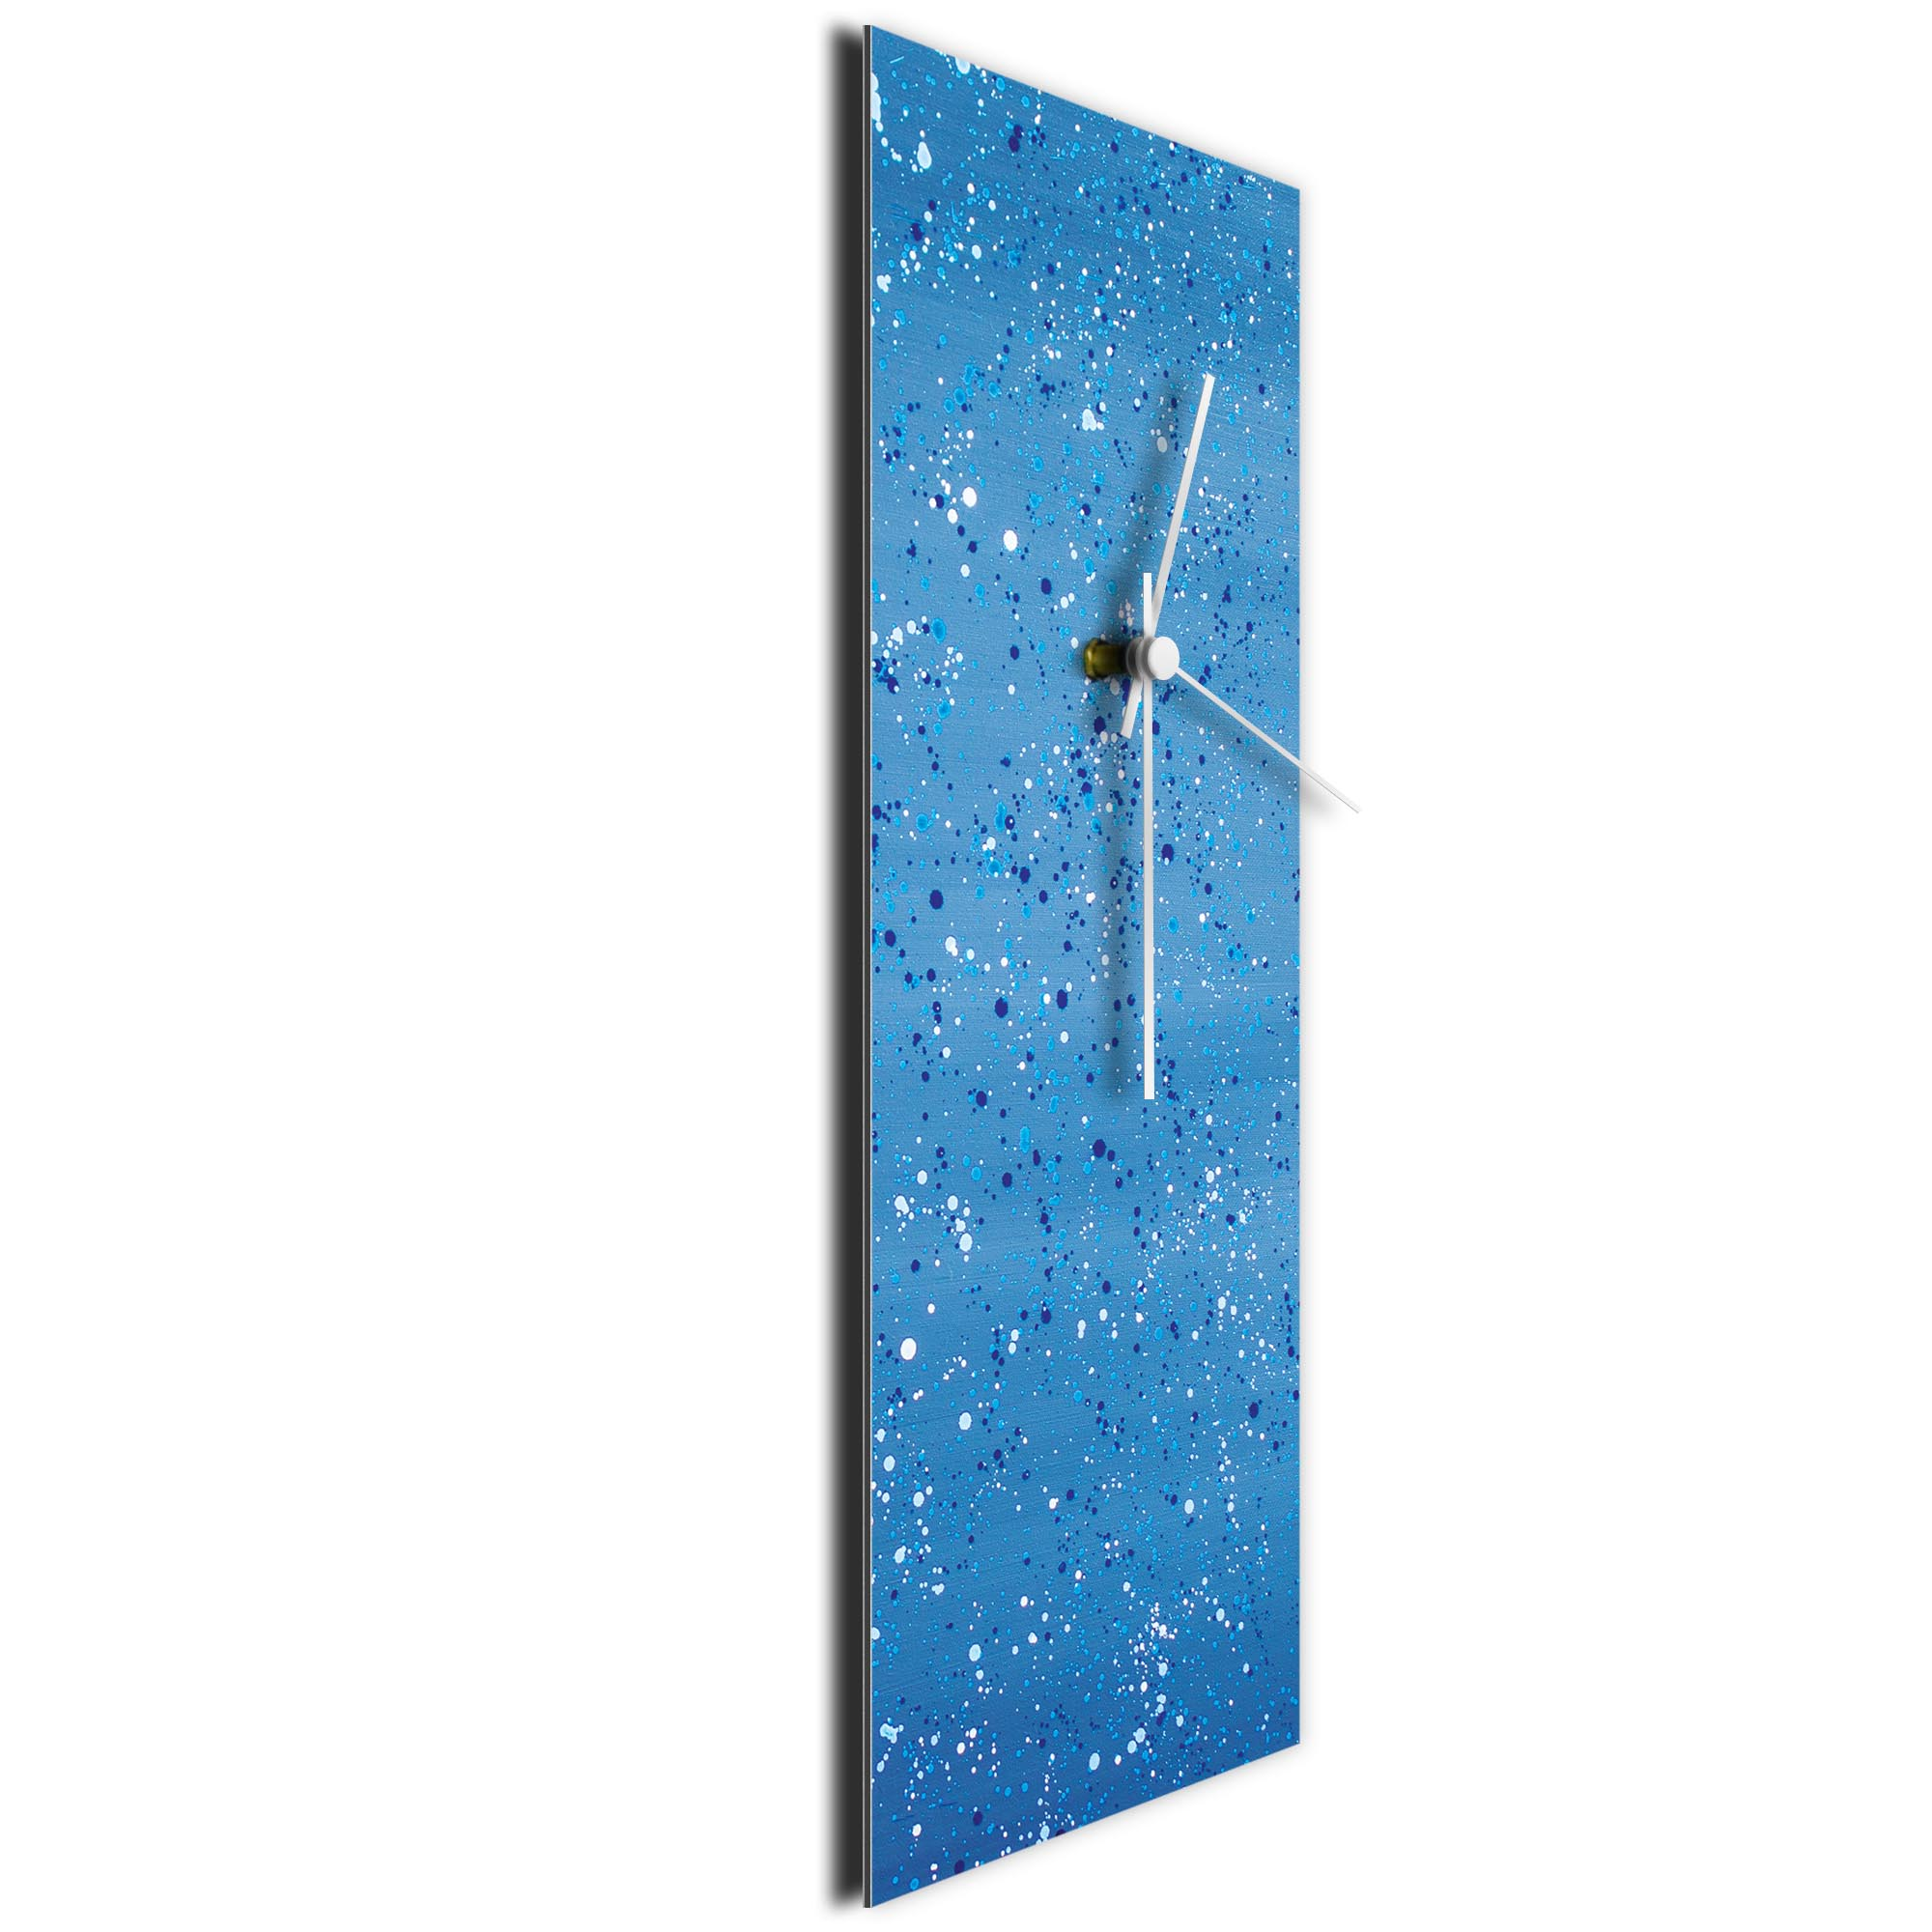 Blue Flecked Clock by Mendo Vasilevski - Urban Abstract Home Decor - Image 3